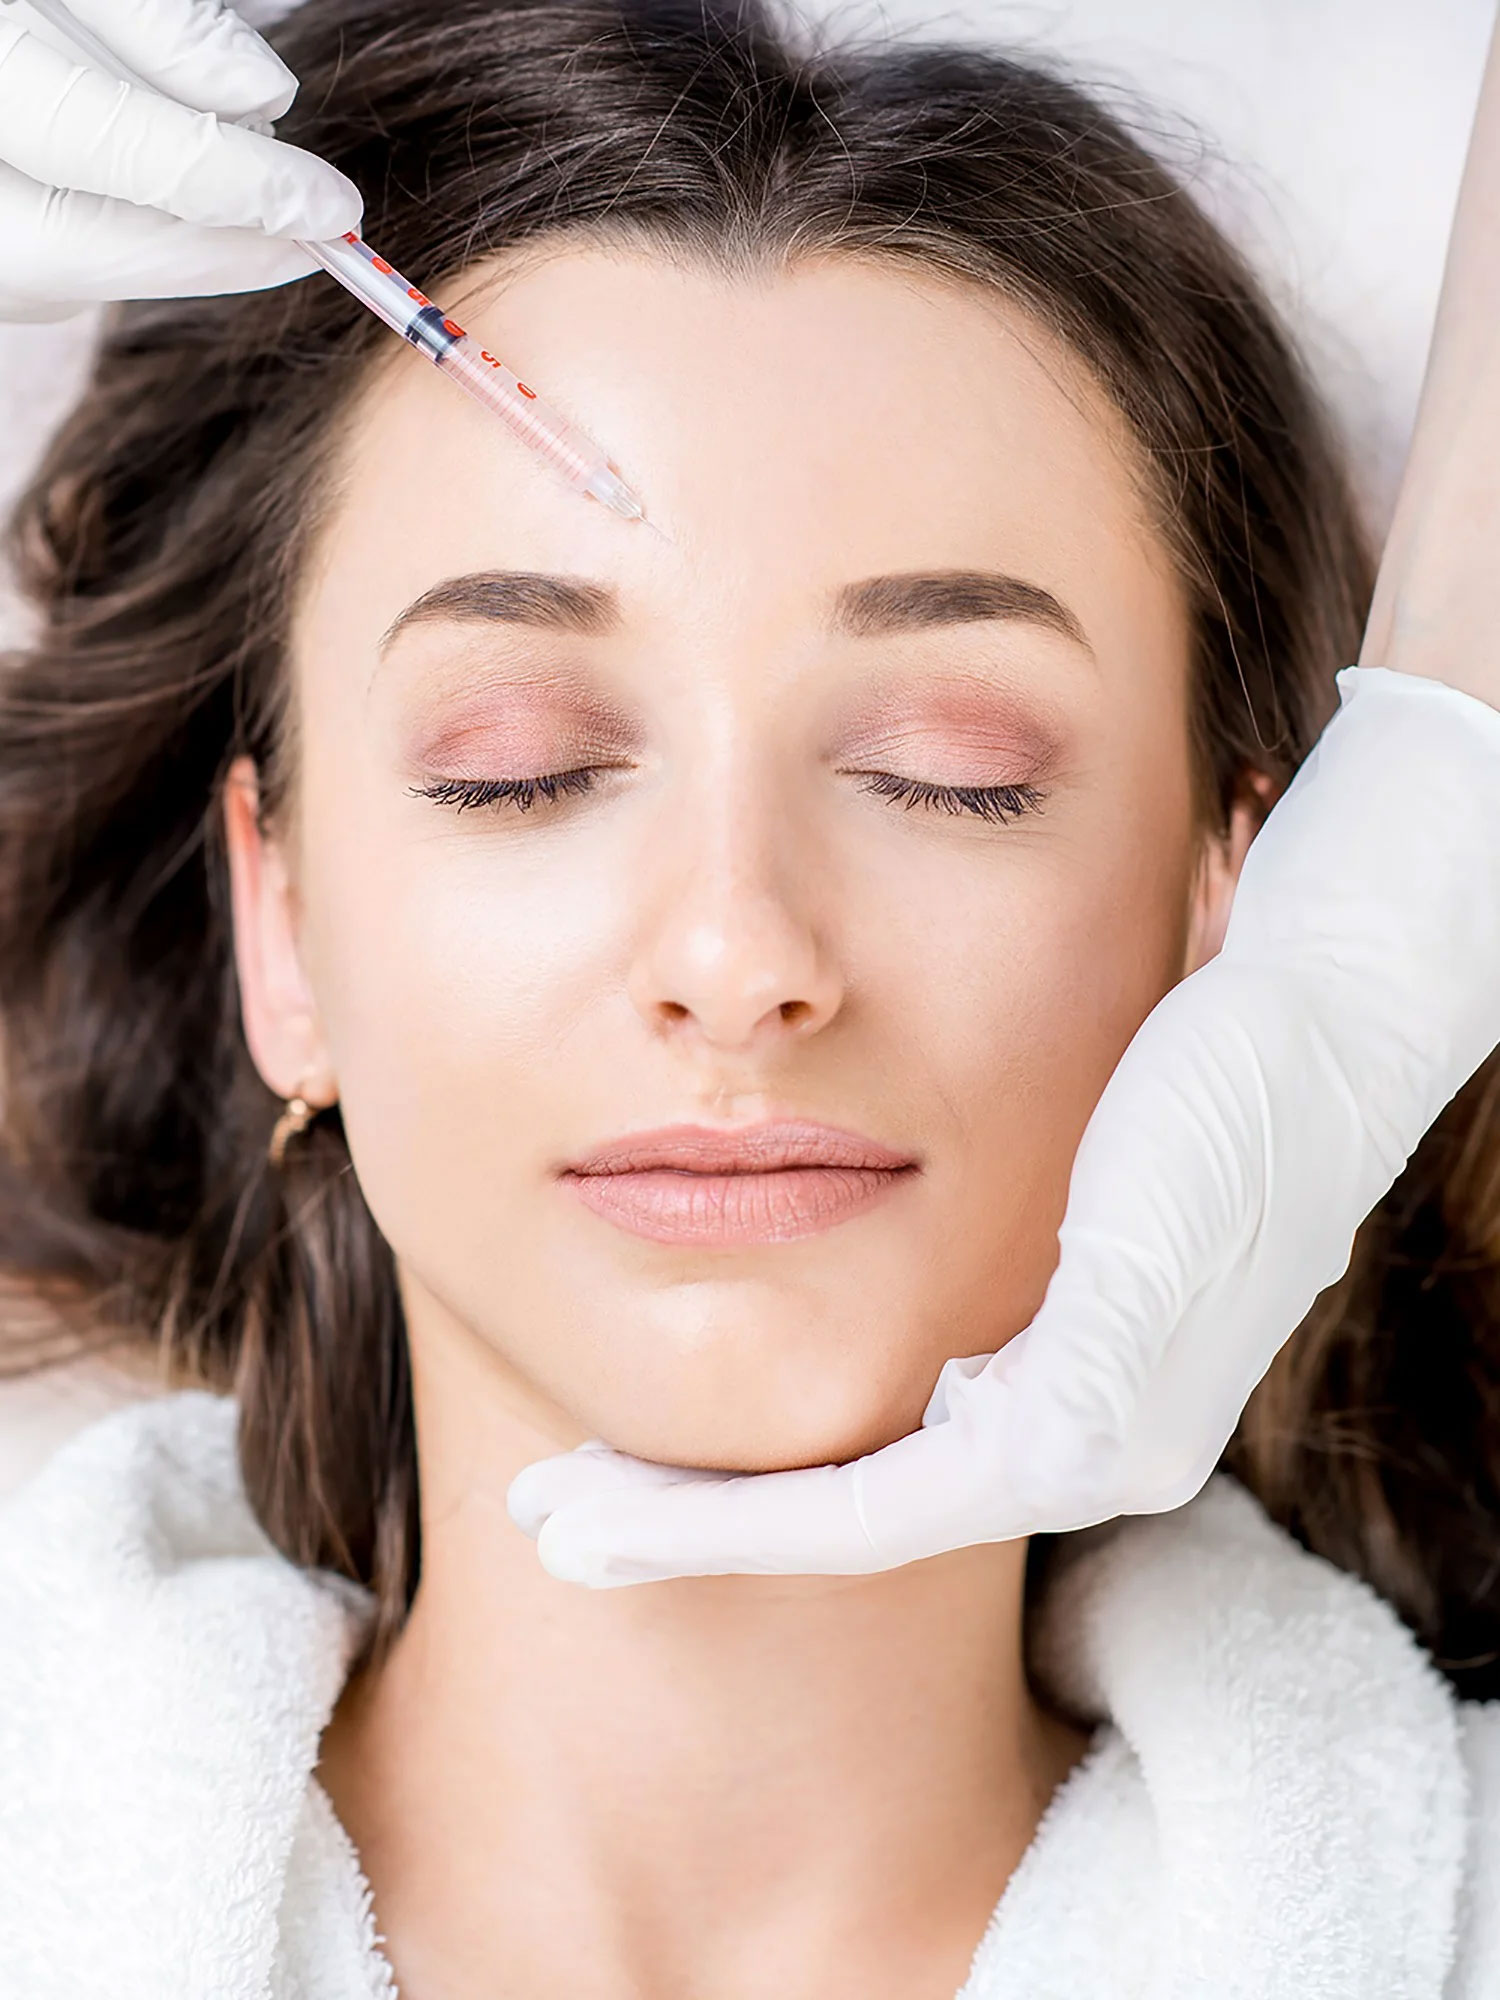 Botox Treatment in Hazratganj